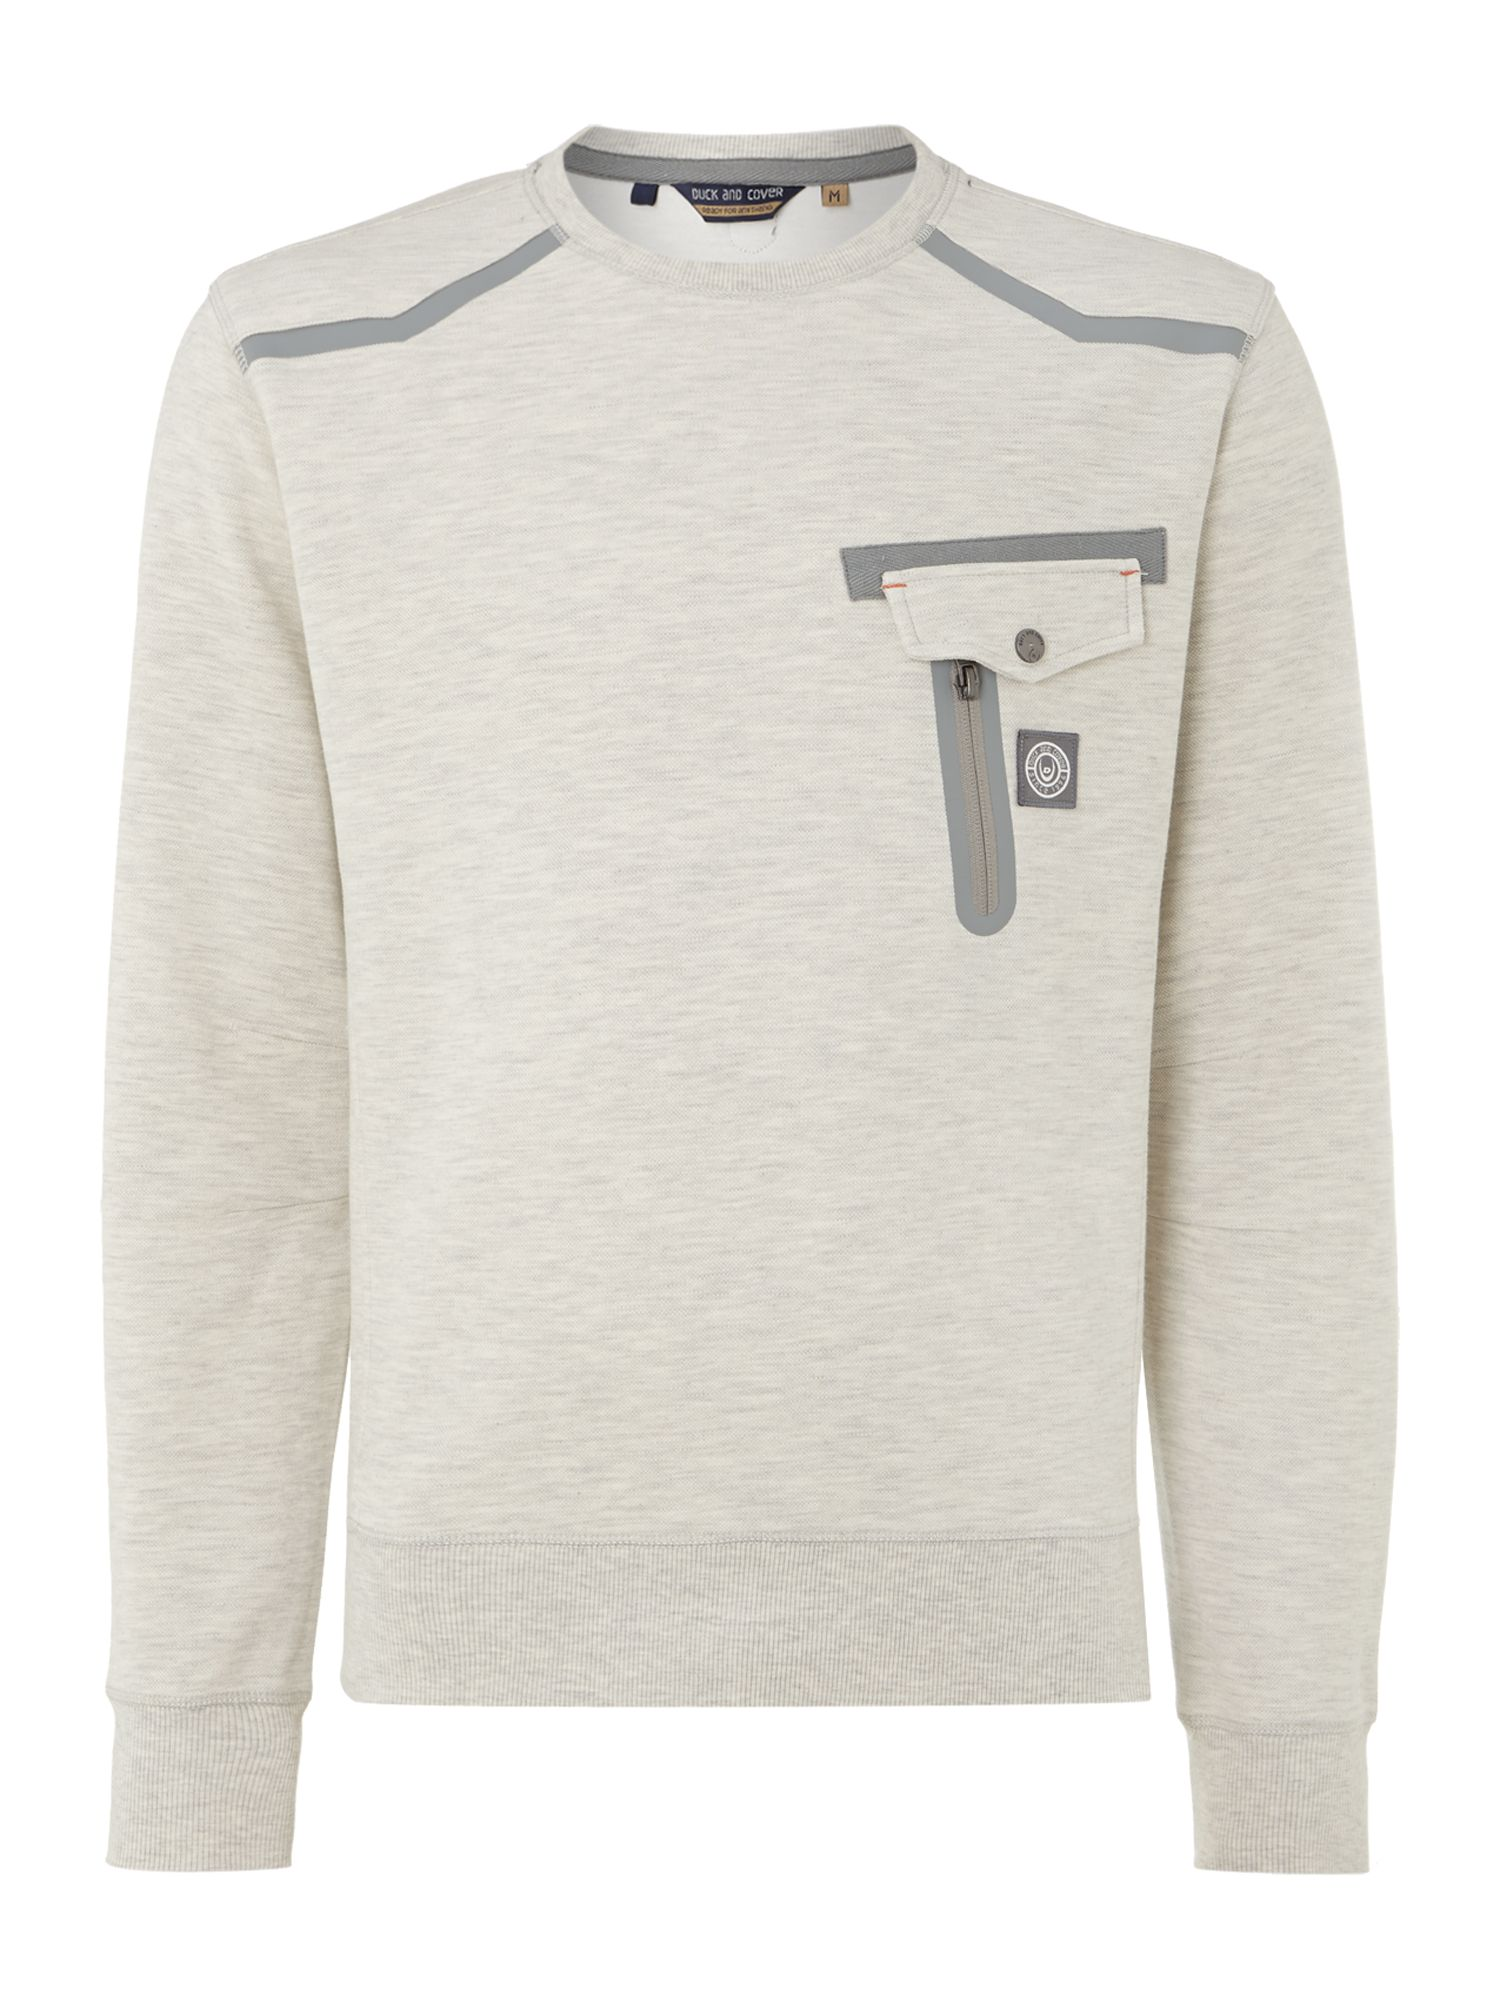 Luwin technical pique crew neck sweatshirt